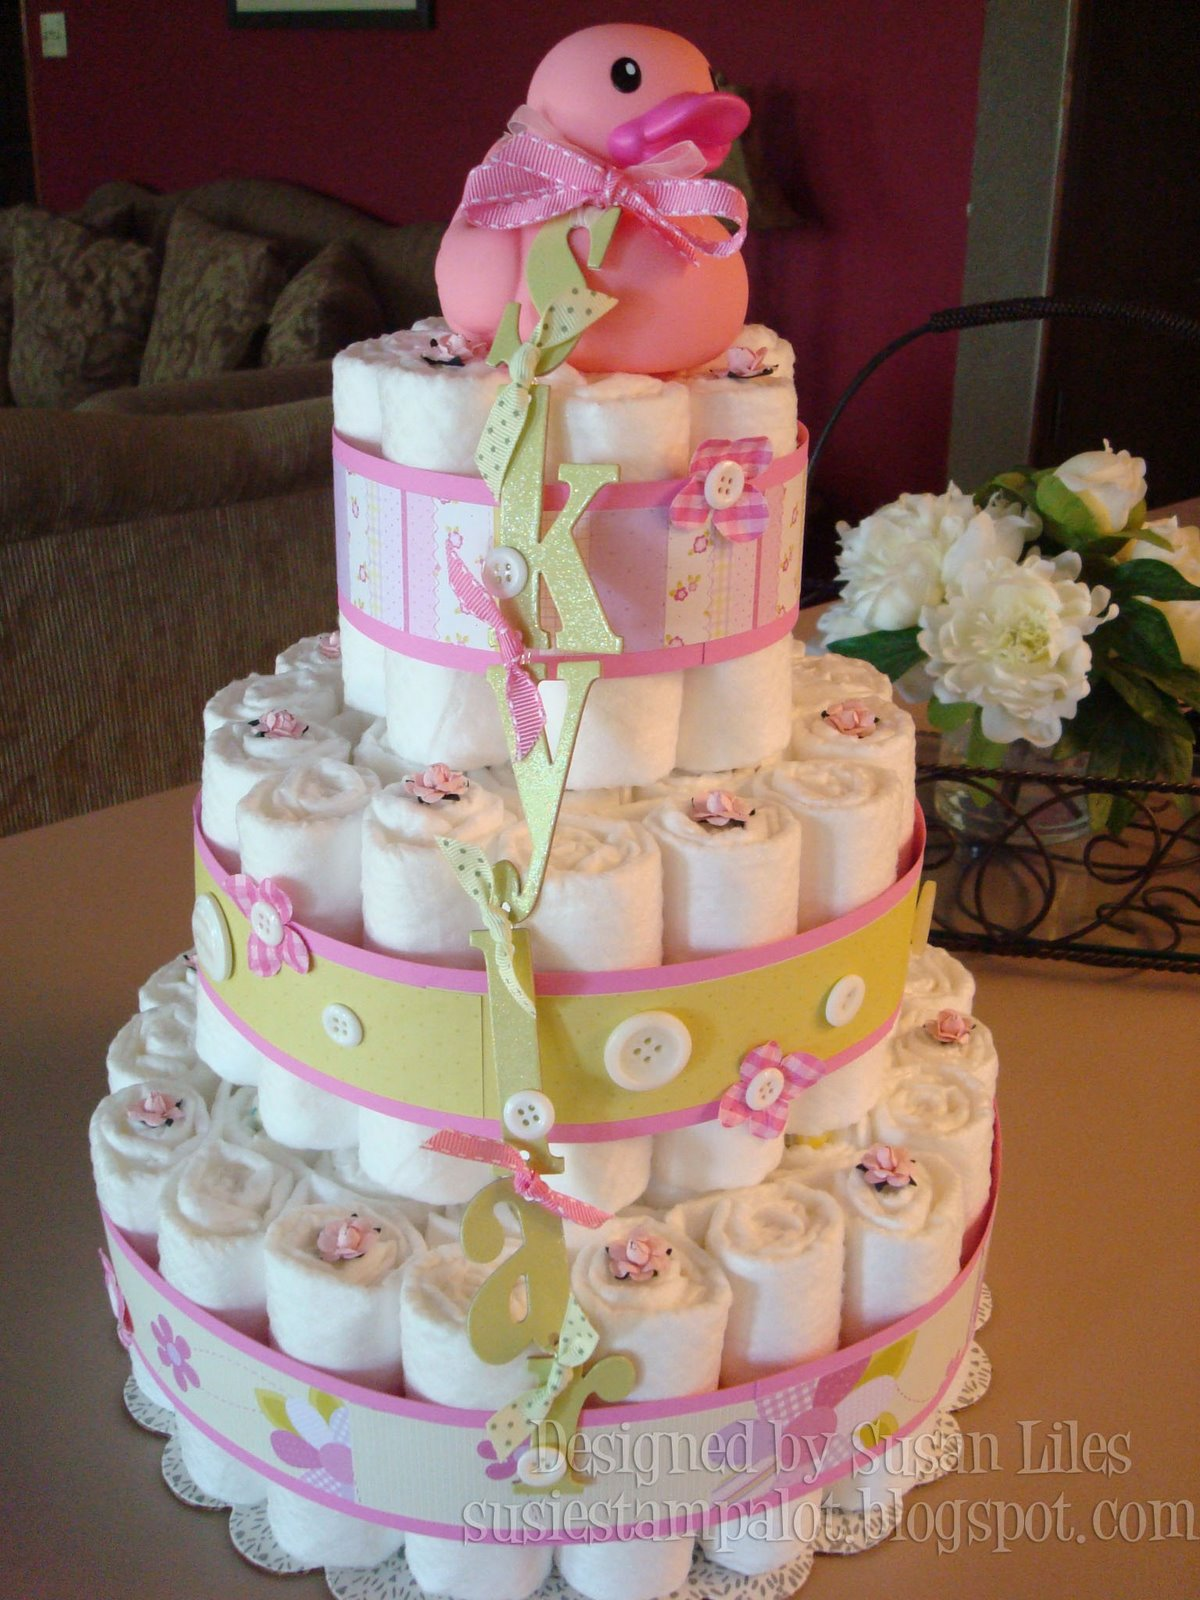 18 Adorable Diaper Cake Ideas To Make A Baby Shower More Special